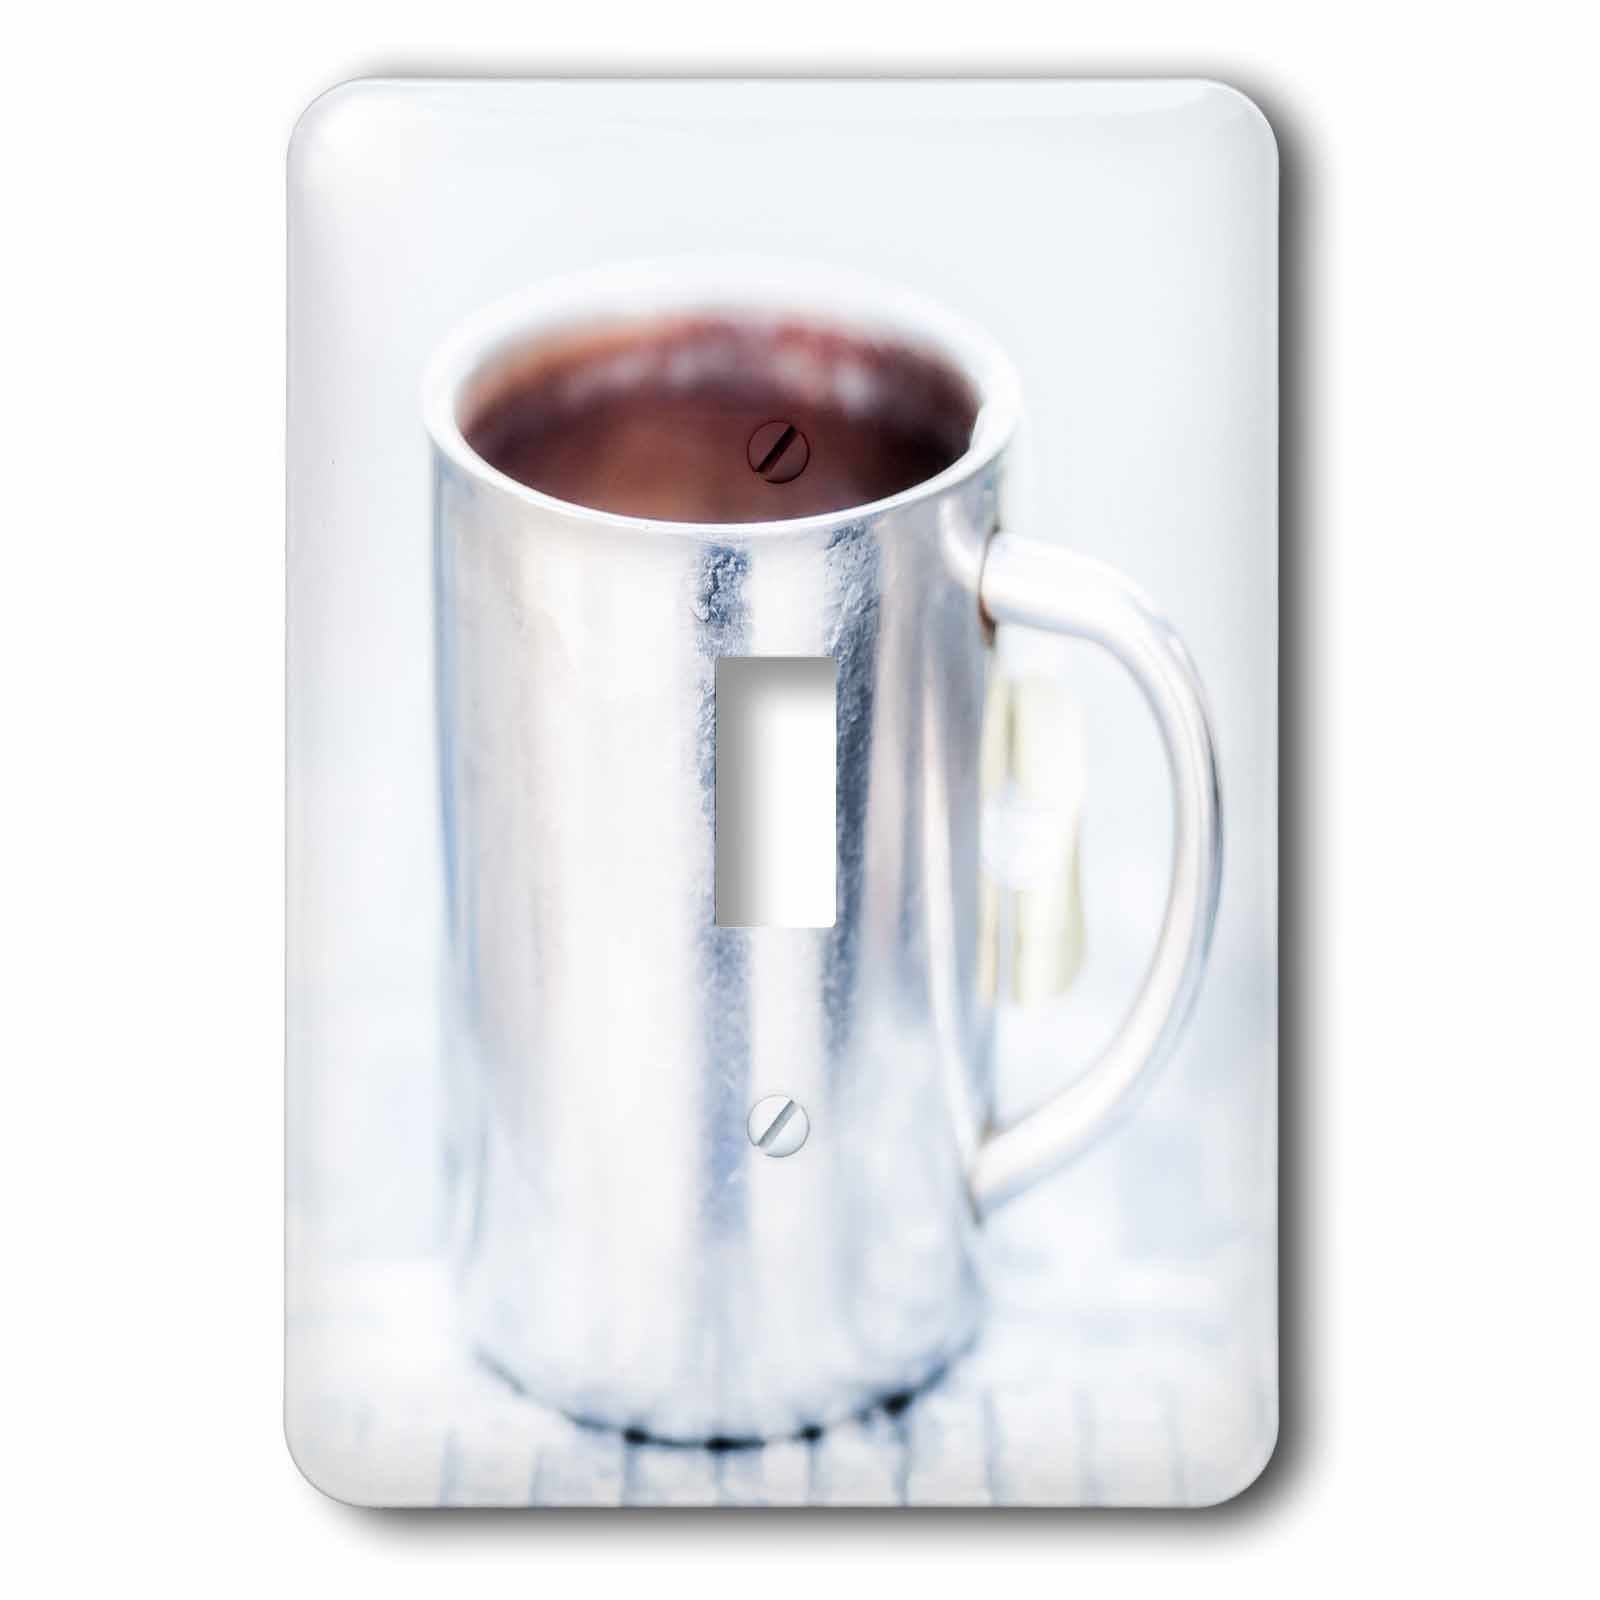 3dRose Alexis Photography - Objects - White aluminum coffee mug against the white background - Light Switch Covers - single toggle switch (lsp_272291_1)